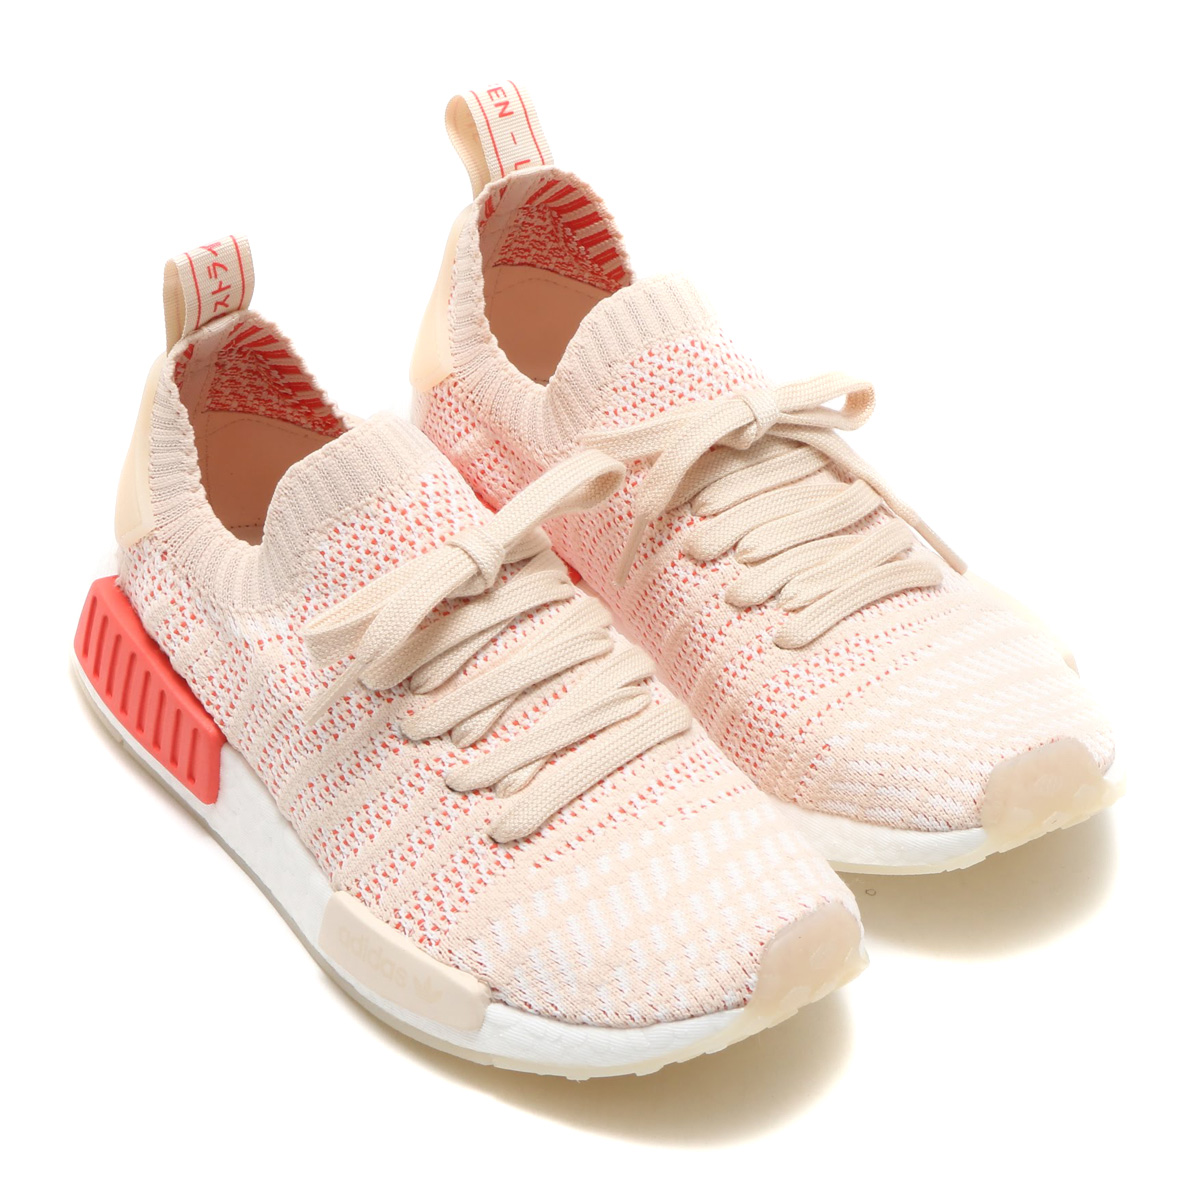 more photos 0847e 27aac adidas Originals NMD_R1 STLT PK W (Adidas originals N M D R1 STLT PK W)  Linen/Crystal White/Running White 18SS-I